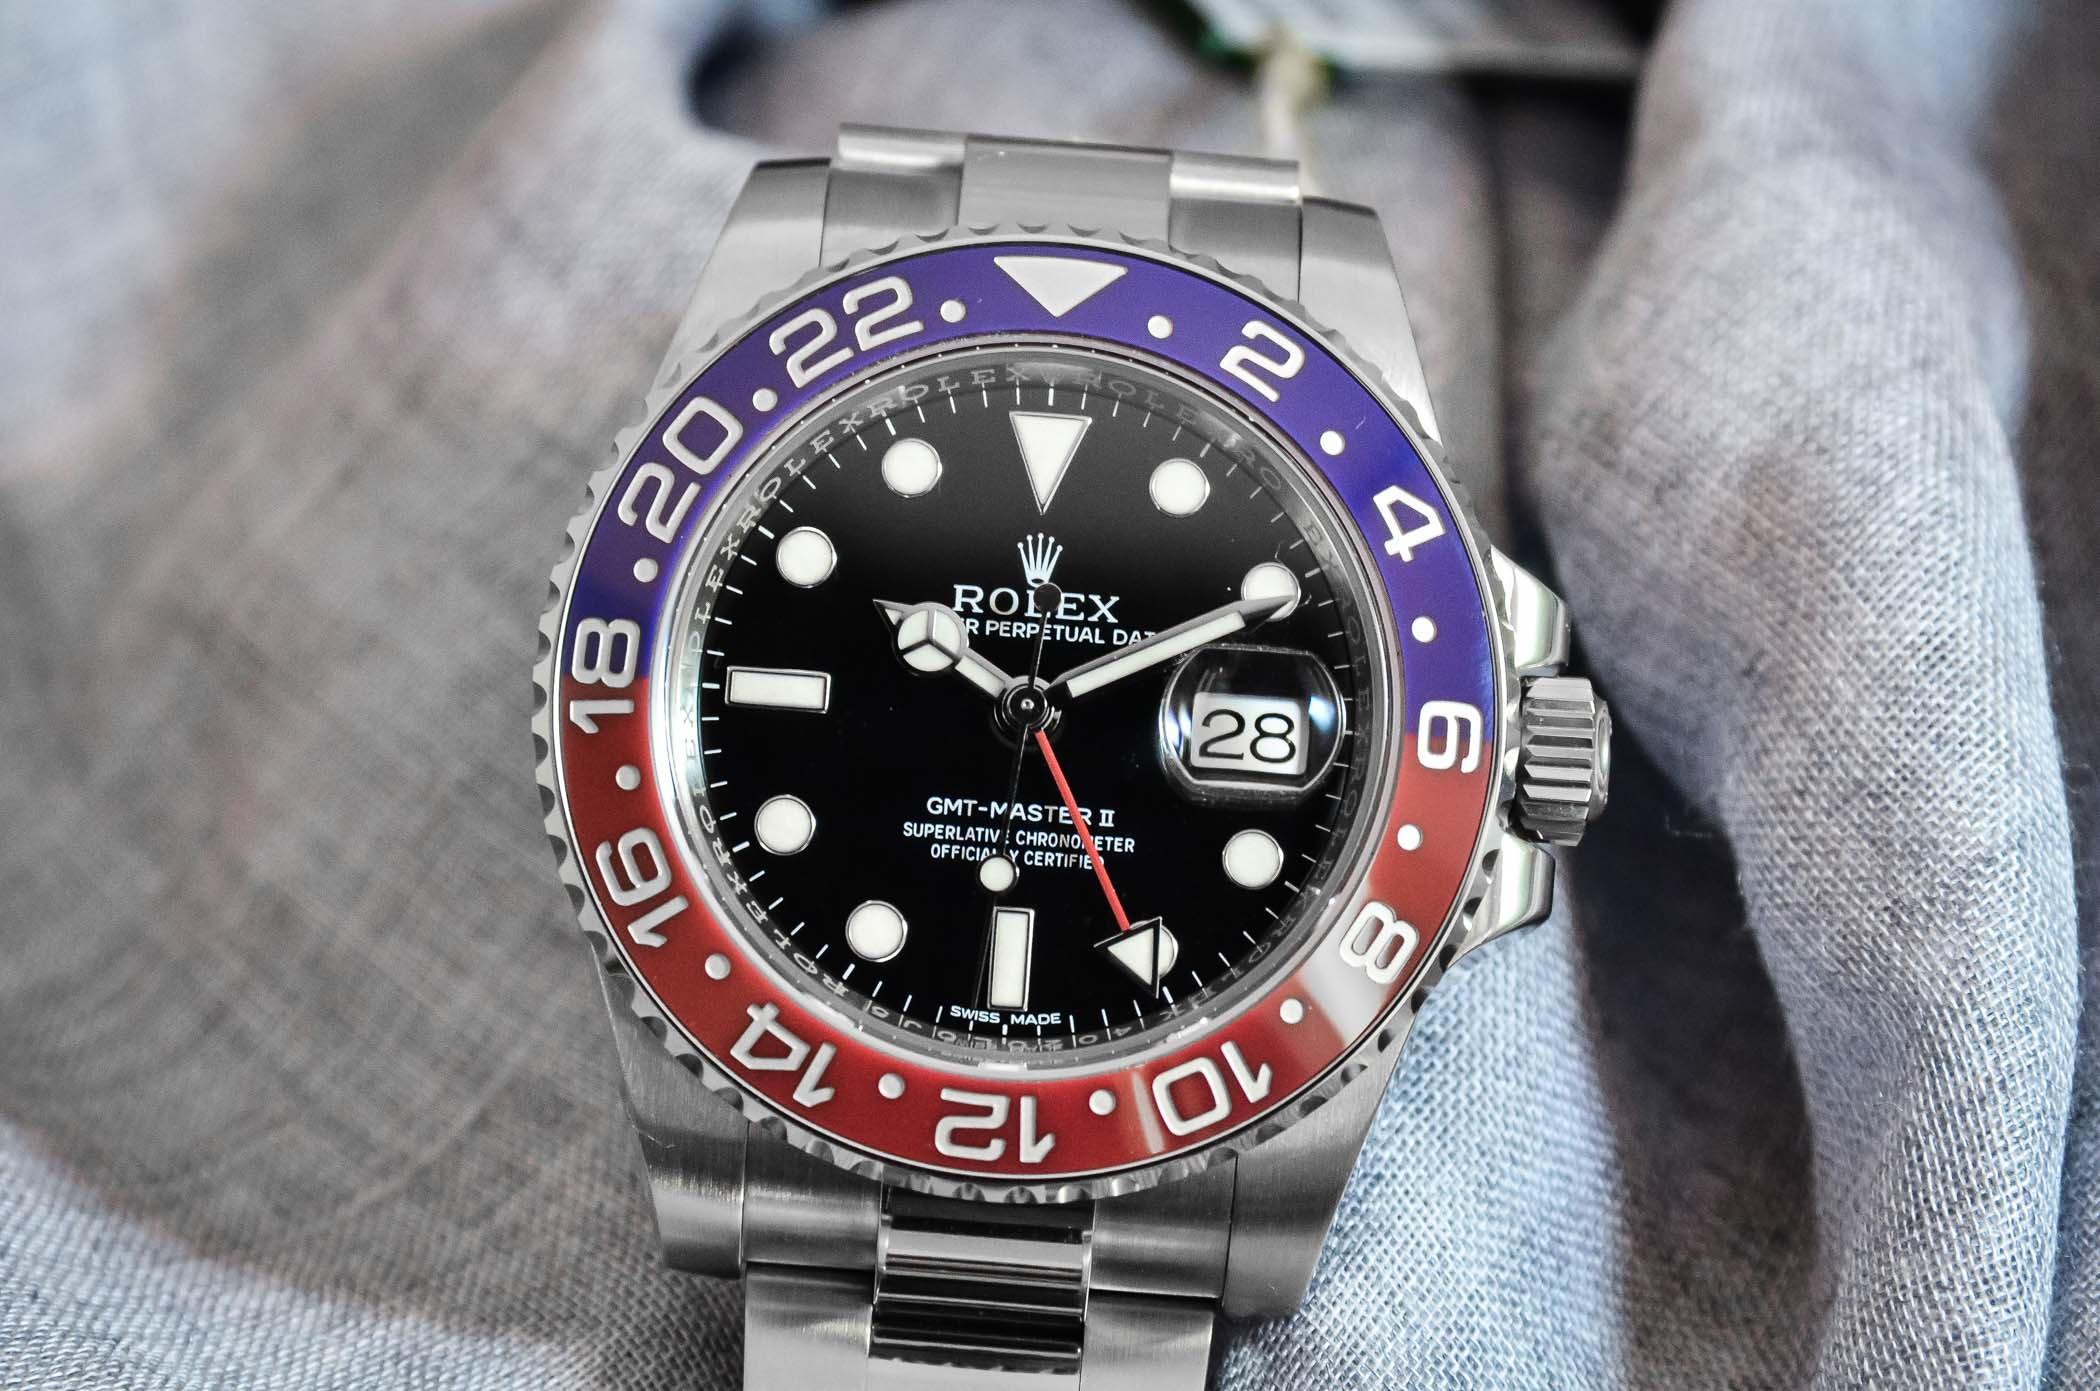 Introducing the Rolex GMT,Master II Pepsi ref. 116719BLRO